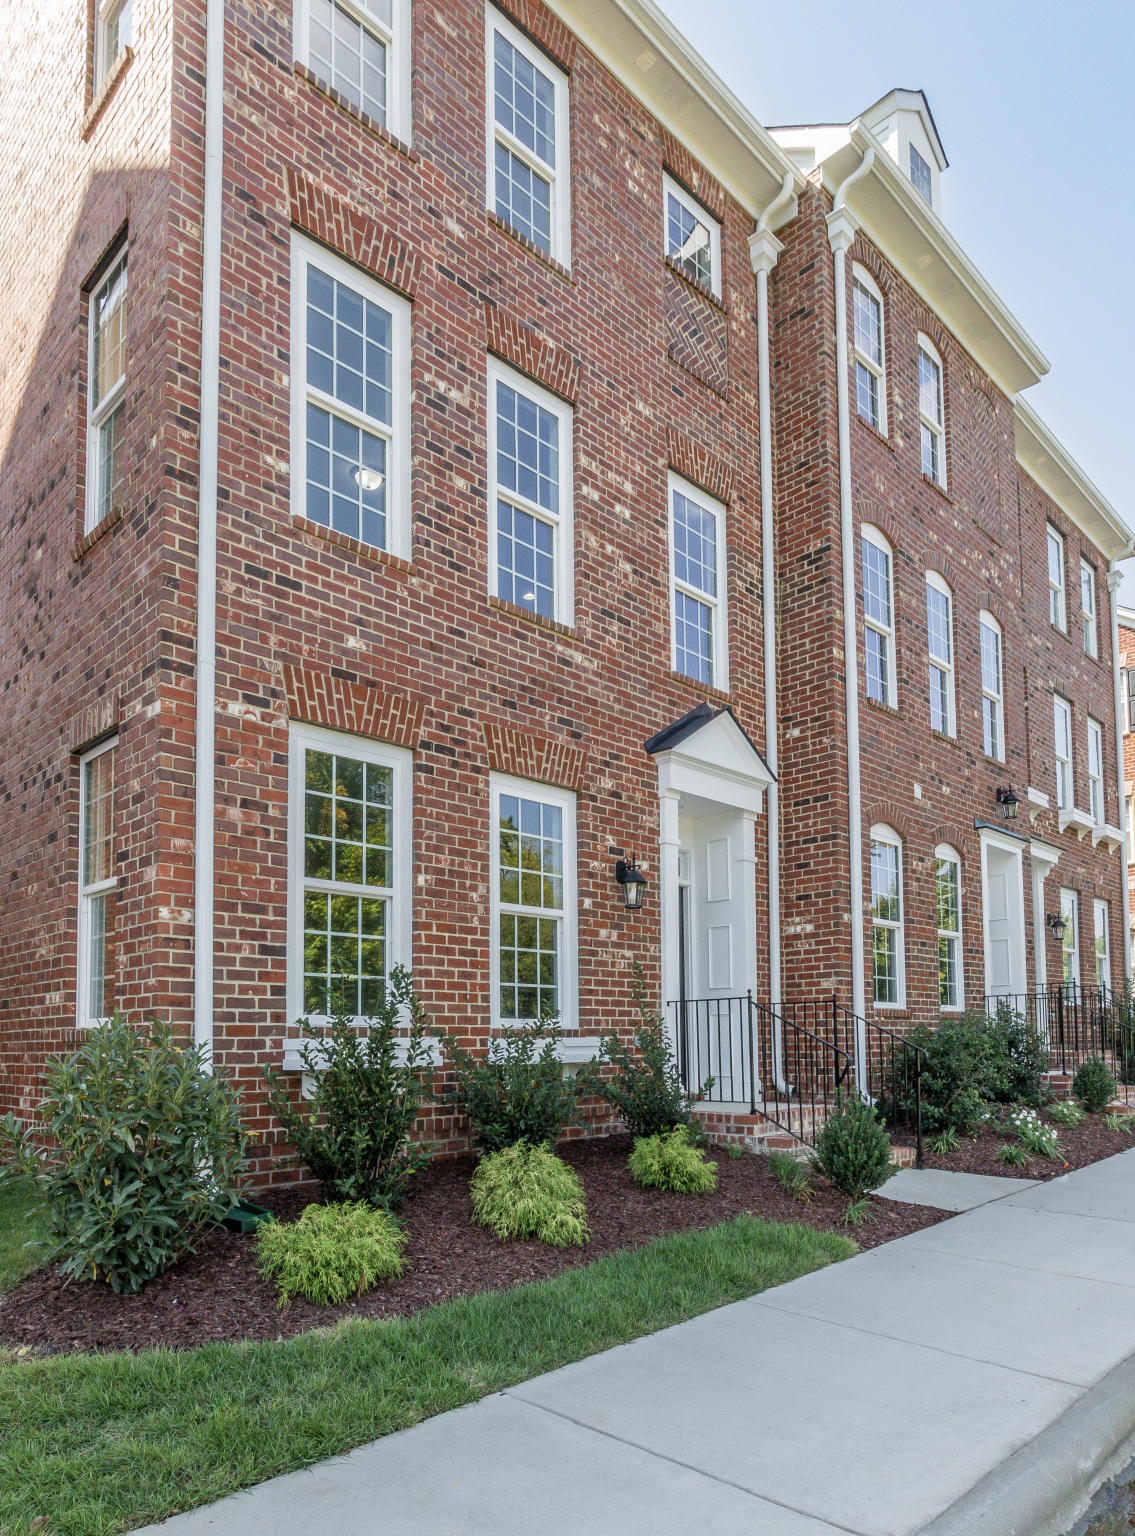 Allston Plan, Charlotte, NC 28273 - 3 Bed, 2.5 Bath Townhouse - 24 on